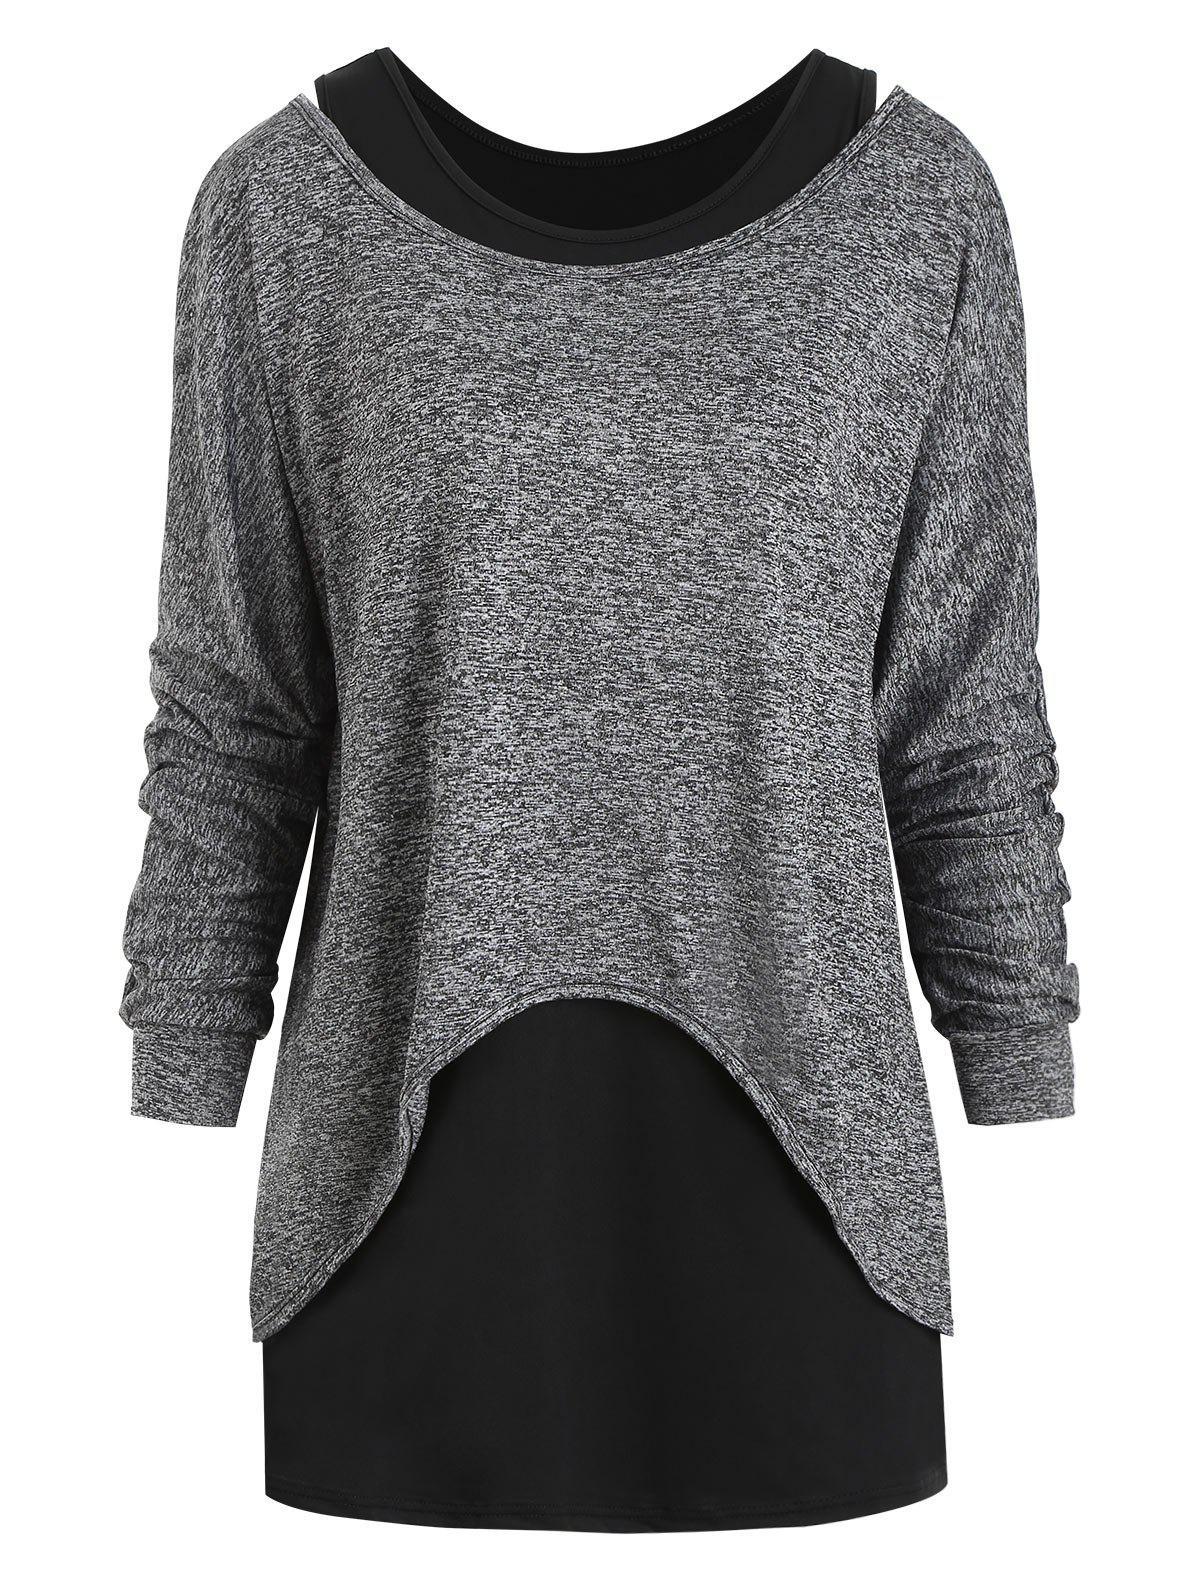 Chic Open Shoulder Heathered High Low Top Set